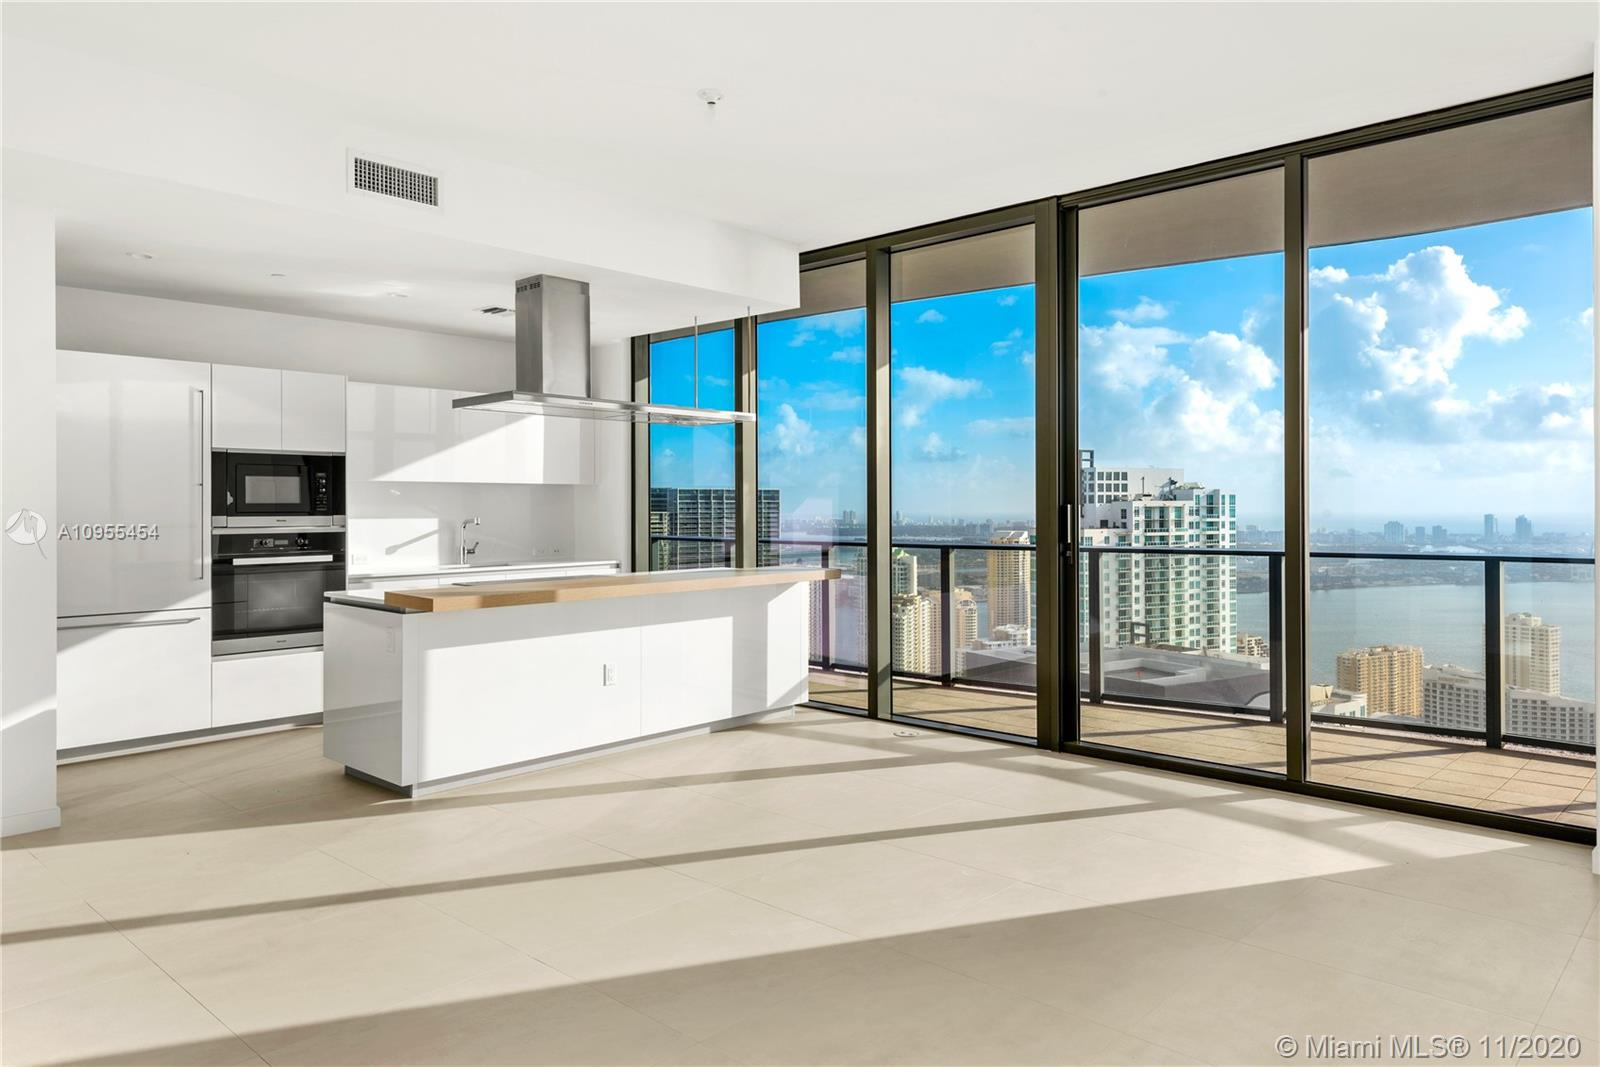 Worldclass views from this 3 Bed + Den/3.5 Bath Lower Penthouse at Brickell Flatiron with higher ceilings. Italian Porcelain floors, hidden hinge doors, Snaidero kitchens, and a great floorplan create an incredible home in the sky. Come see the rooftop pool, spa and fitness center with Pilates/yoga and aerobics studio, private steam and sauna facilities. Some of the other amenities include a children's play area, game room, movie theatre and recreation rooms. All in the heart of Brickell.